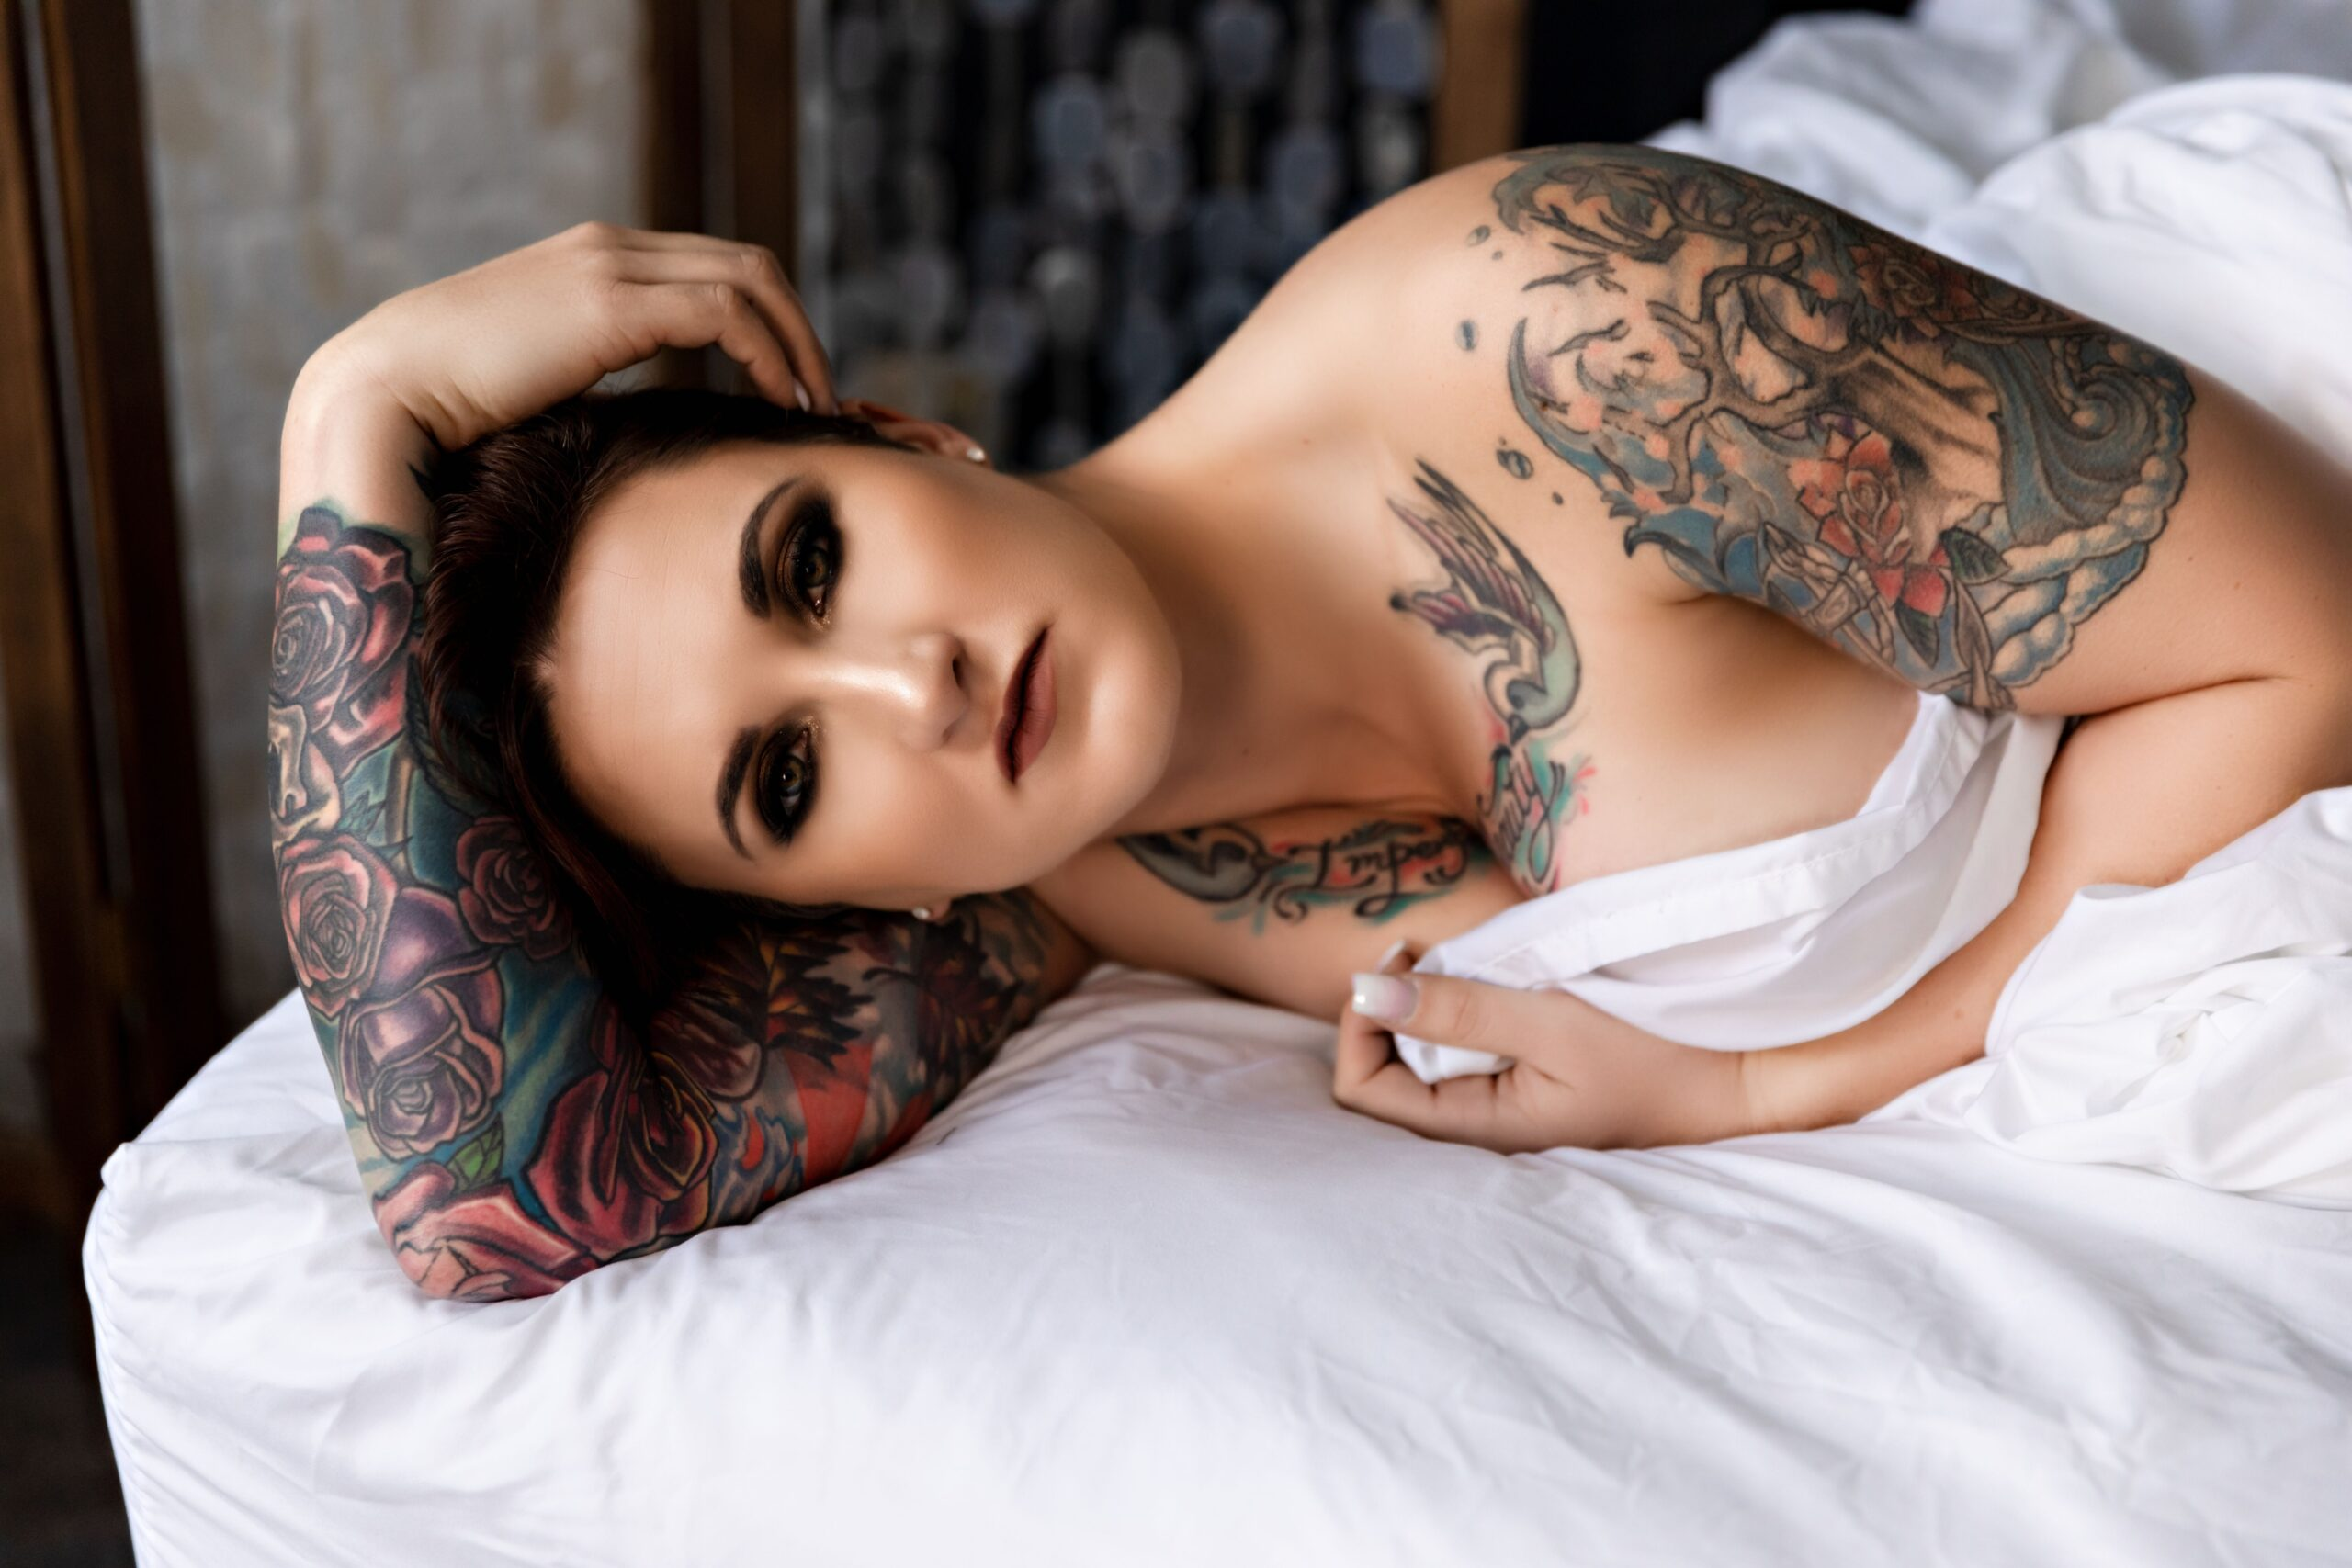 Tattoo babe in white sheets